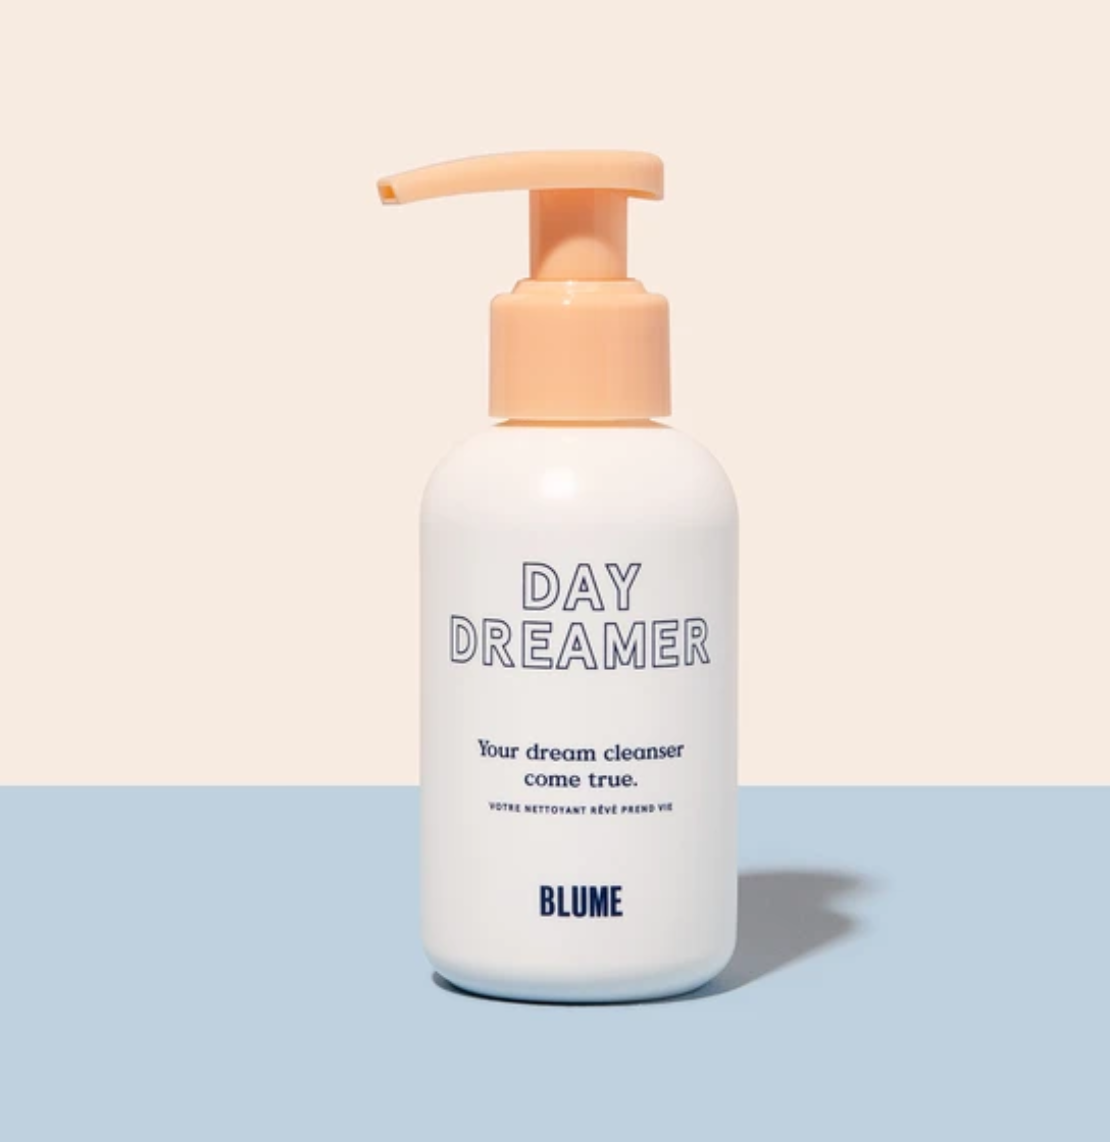 Blume Daydreamer Cleanser